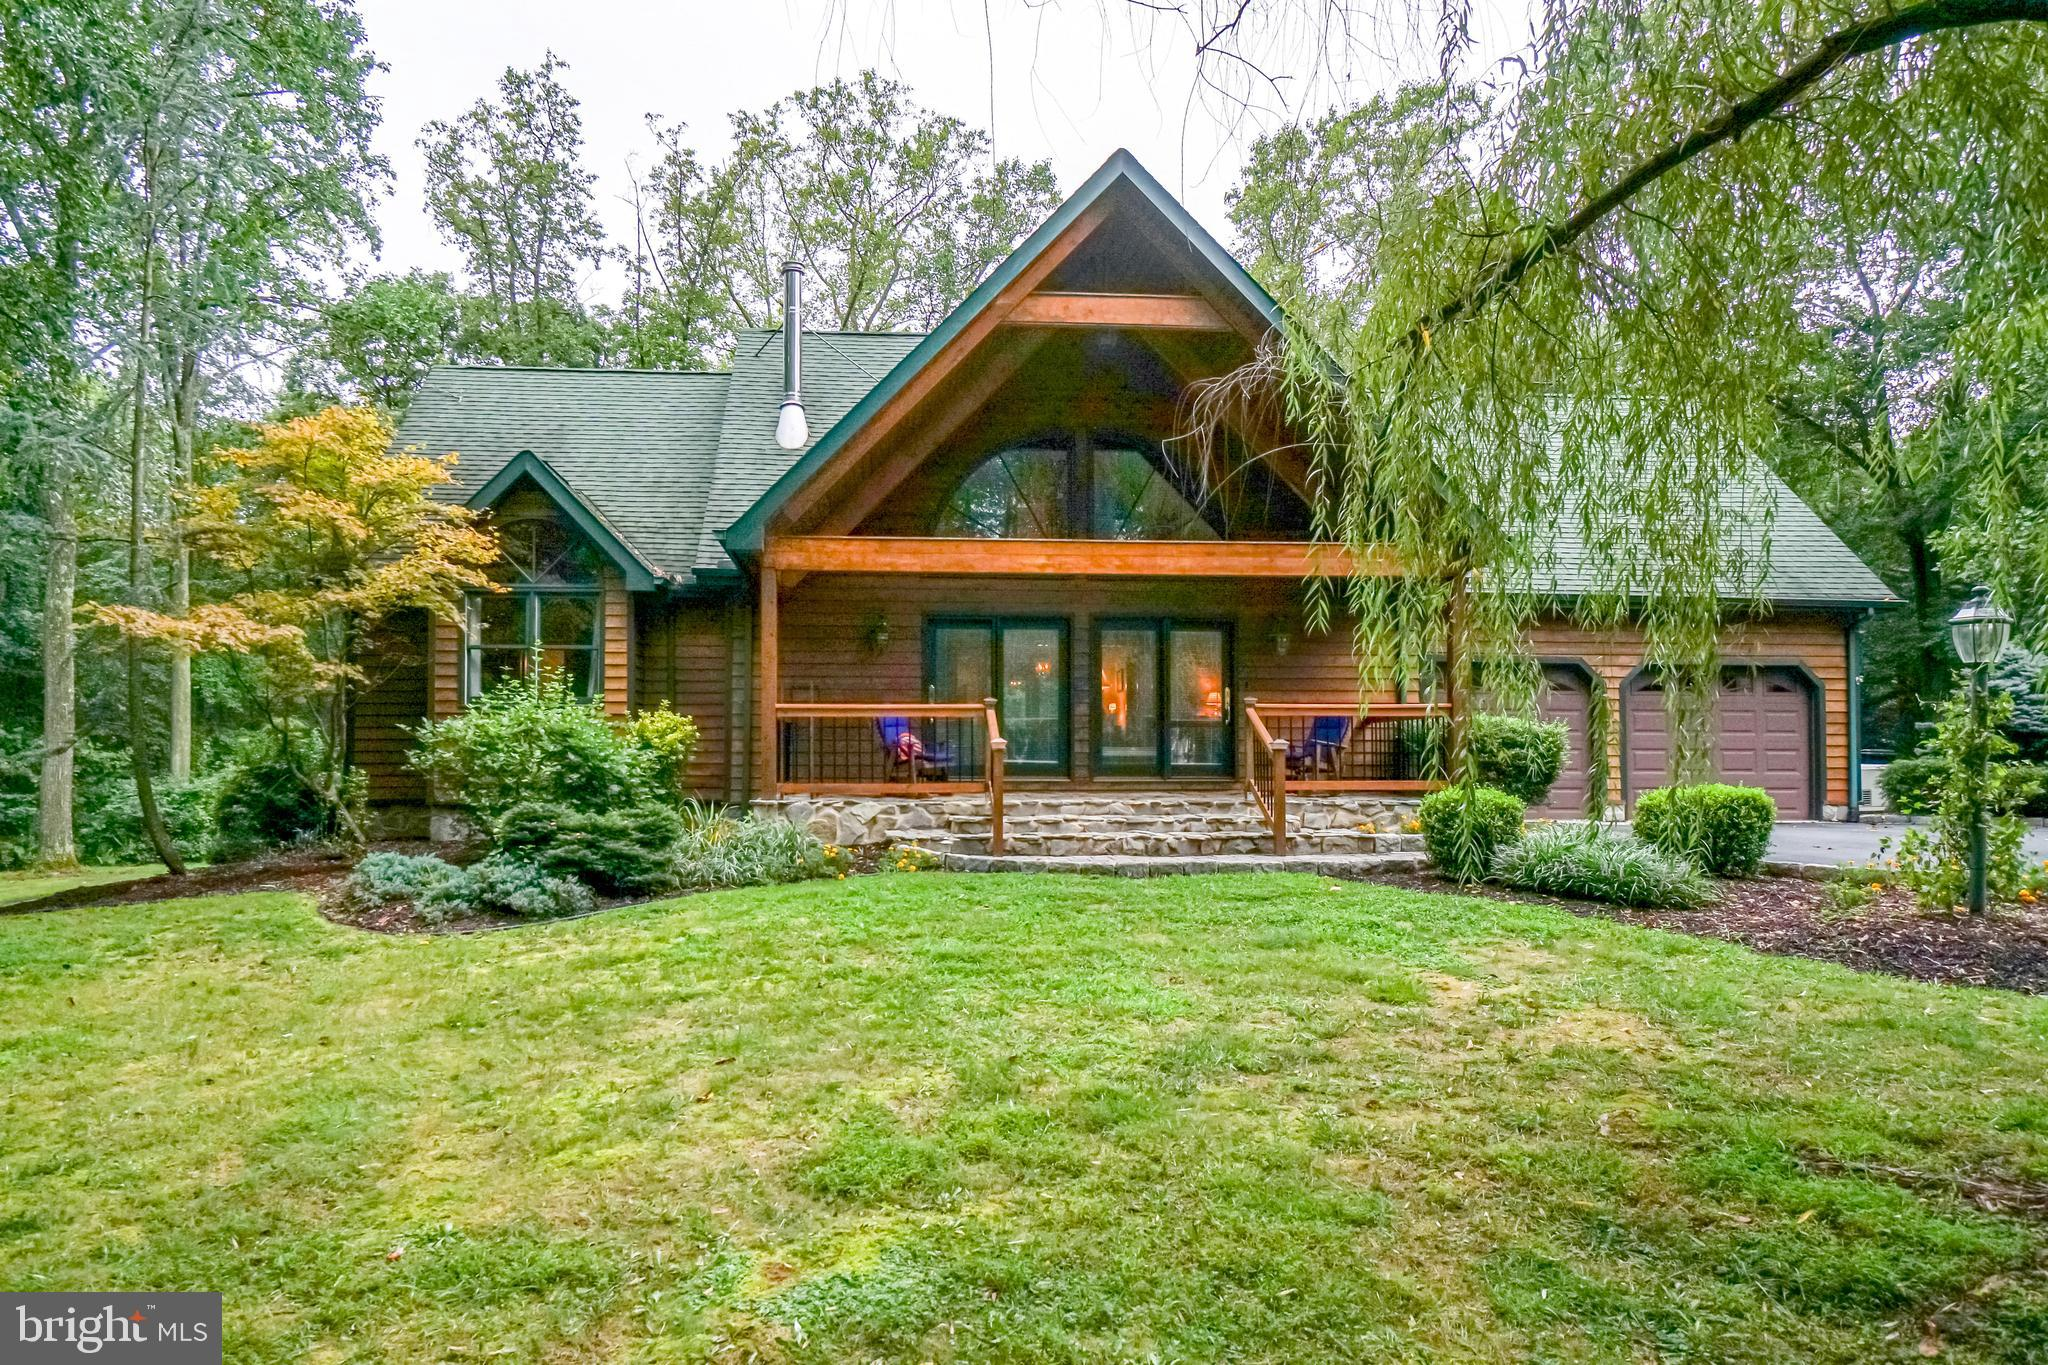 477 HANCES POINT ROAD, NORTH EAST, MD 21901